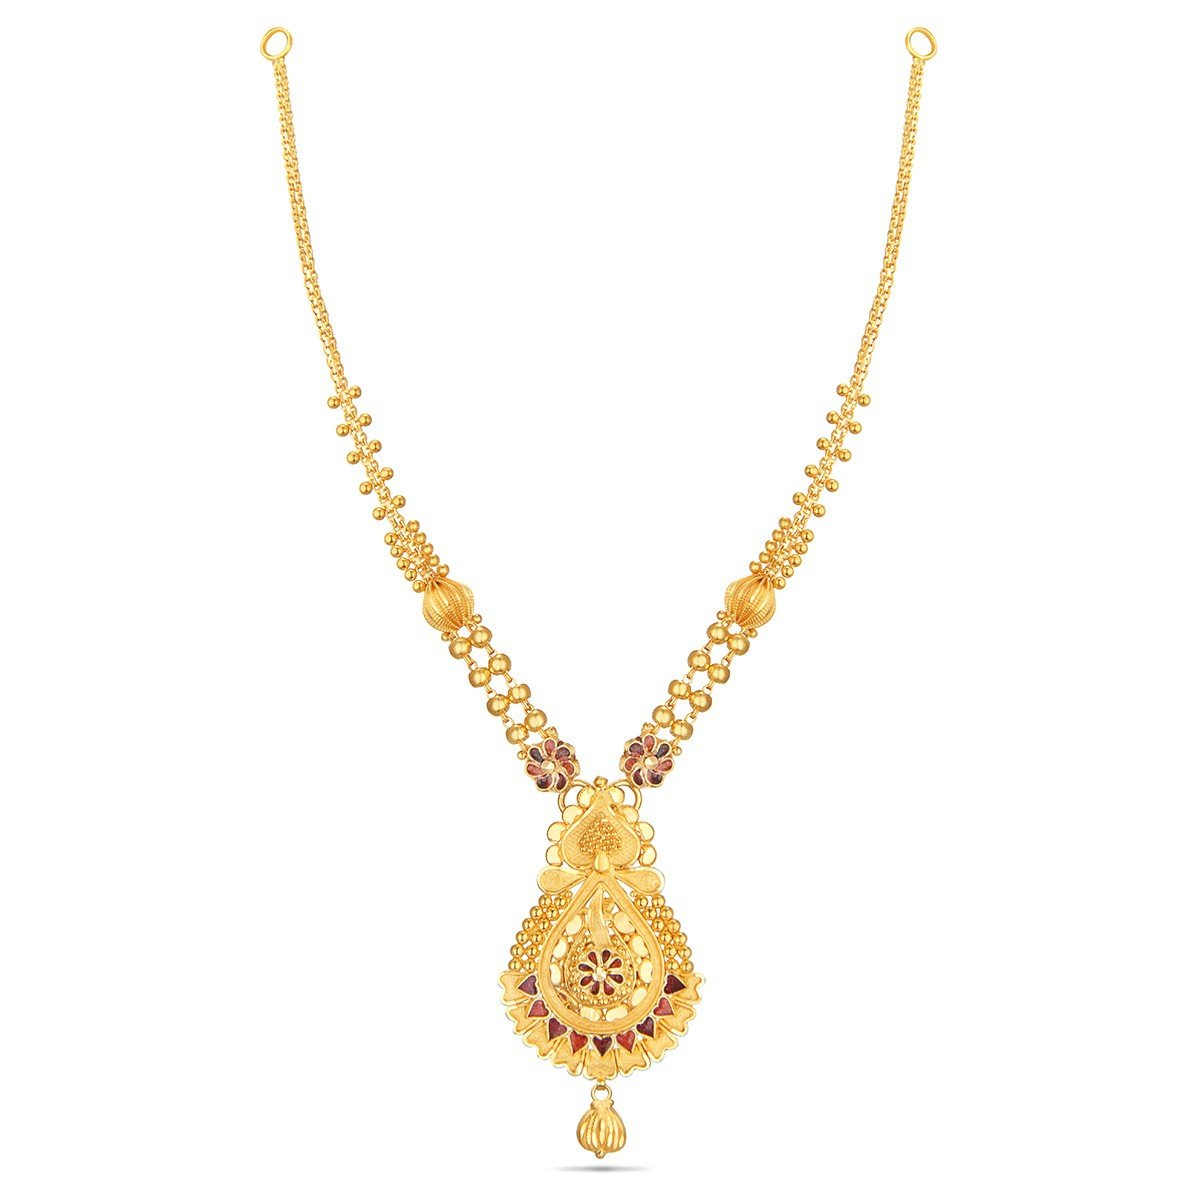 Online Jewellery Shopping Store | Buy 22Kt Gold Jewellery